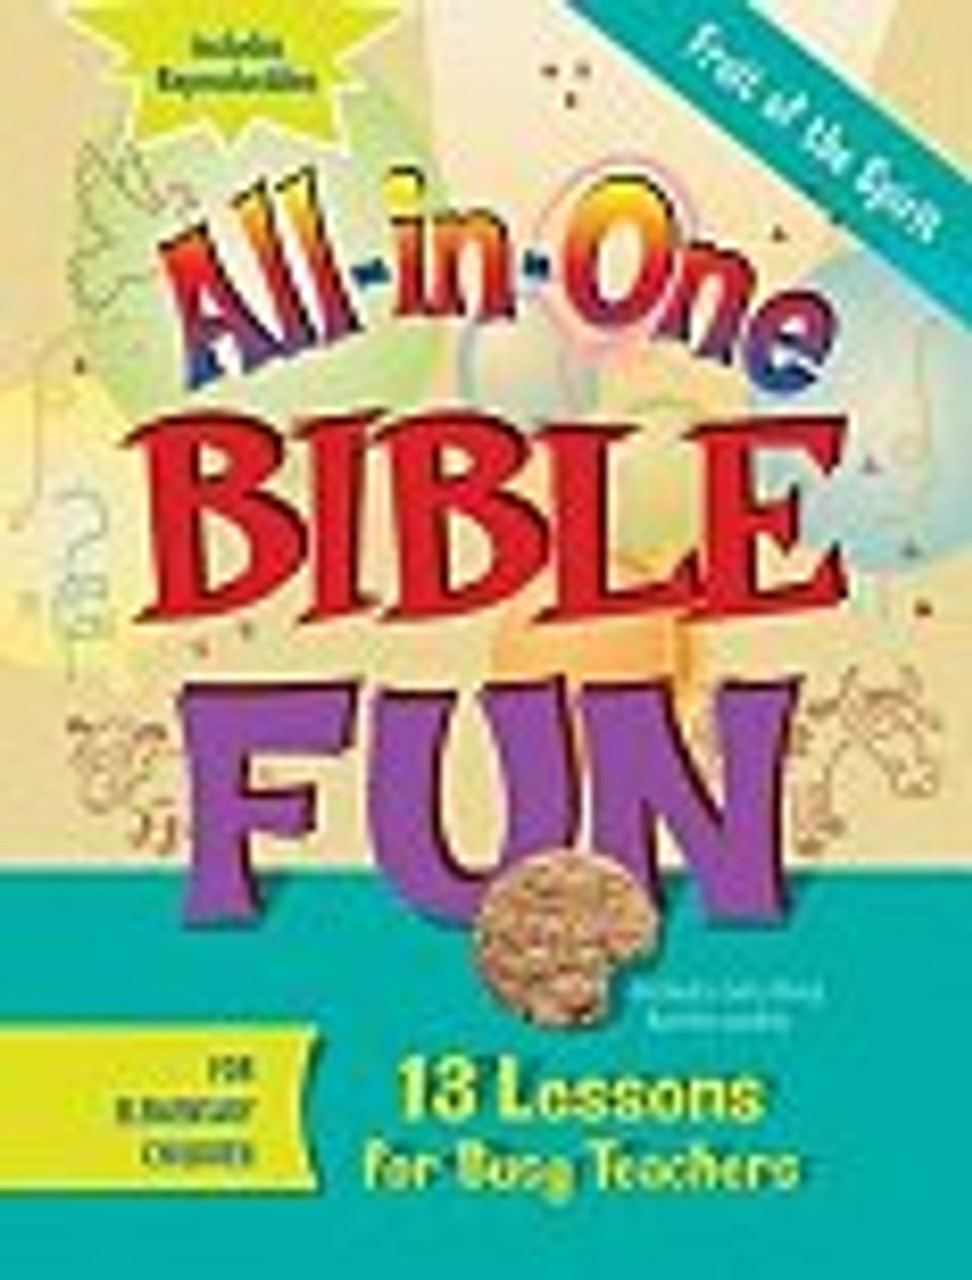 All in One Bible Fun Fruit of the Spirit Elementary